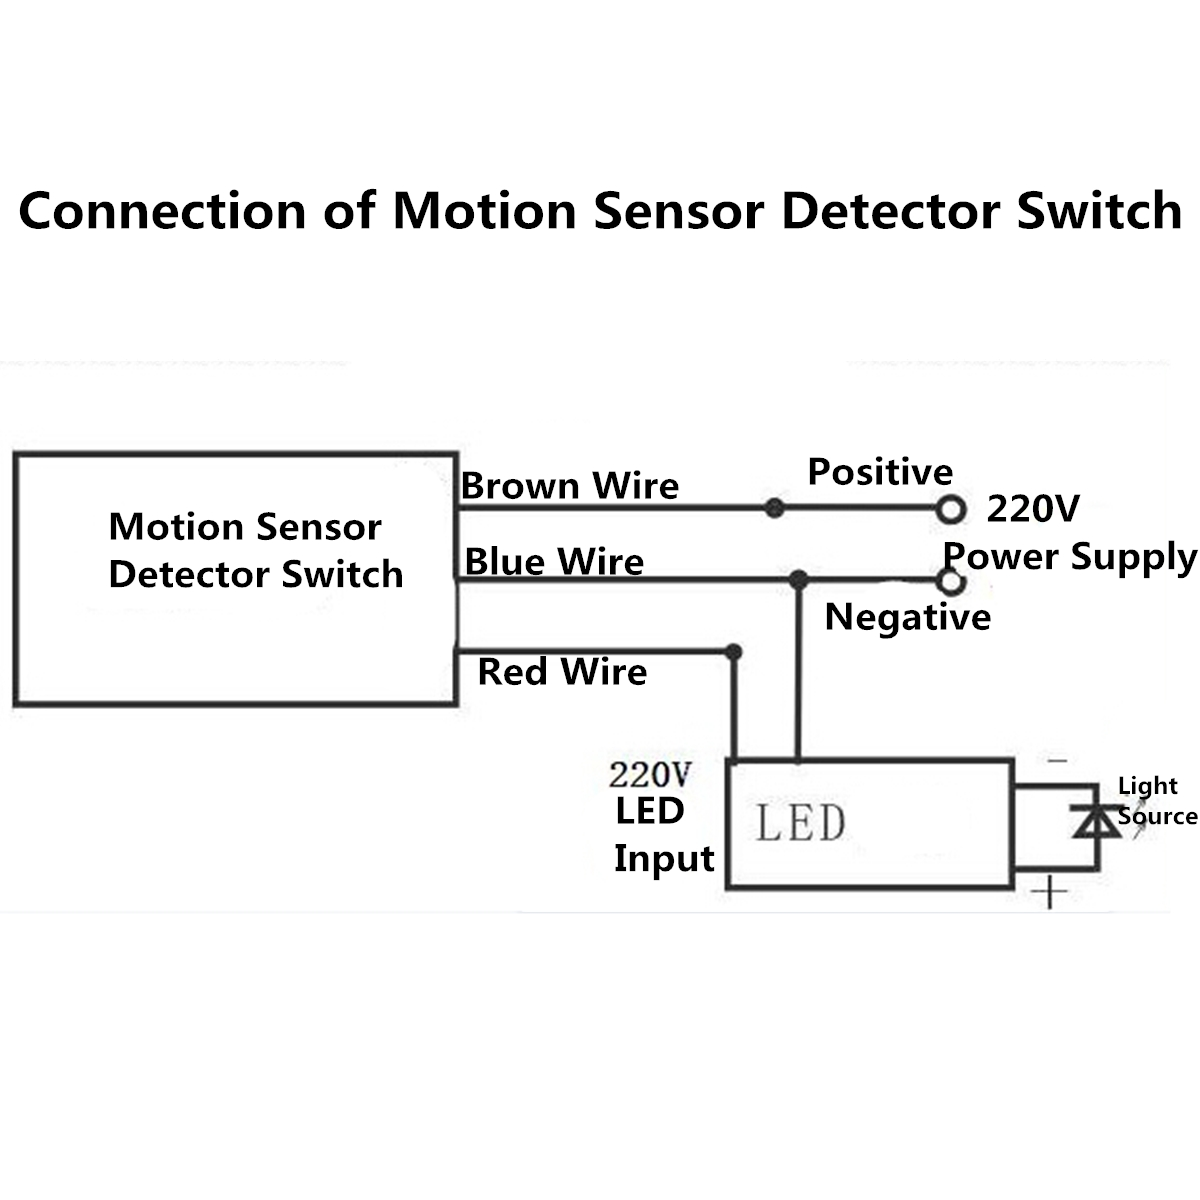 hight resolution of light switch wiring diagram 220v wiring librarymotion sensor light switch wiring diagram small pir circuit typical